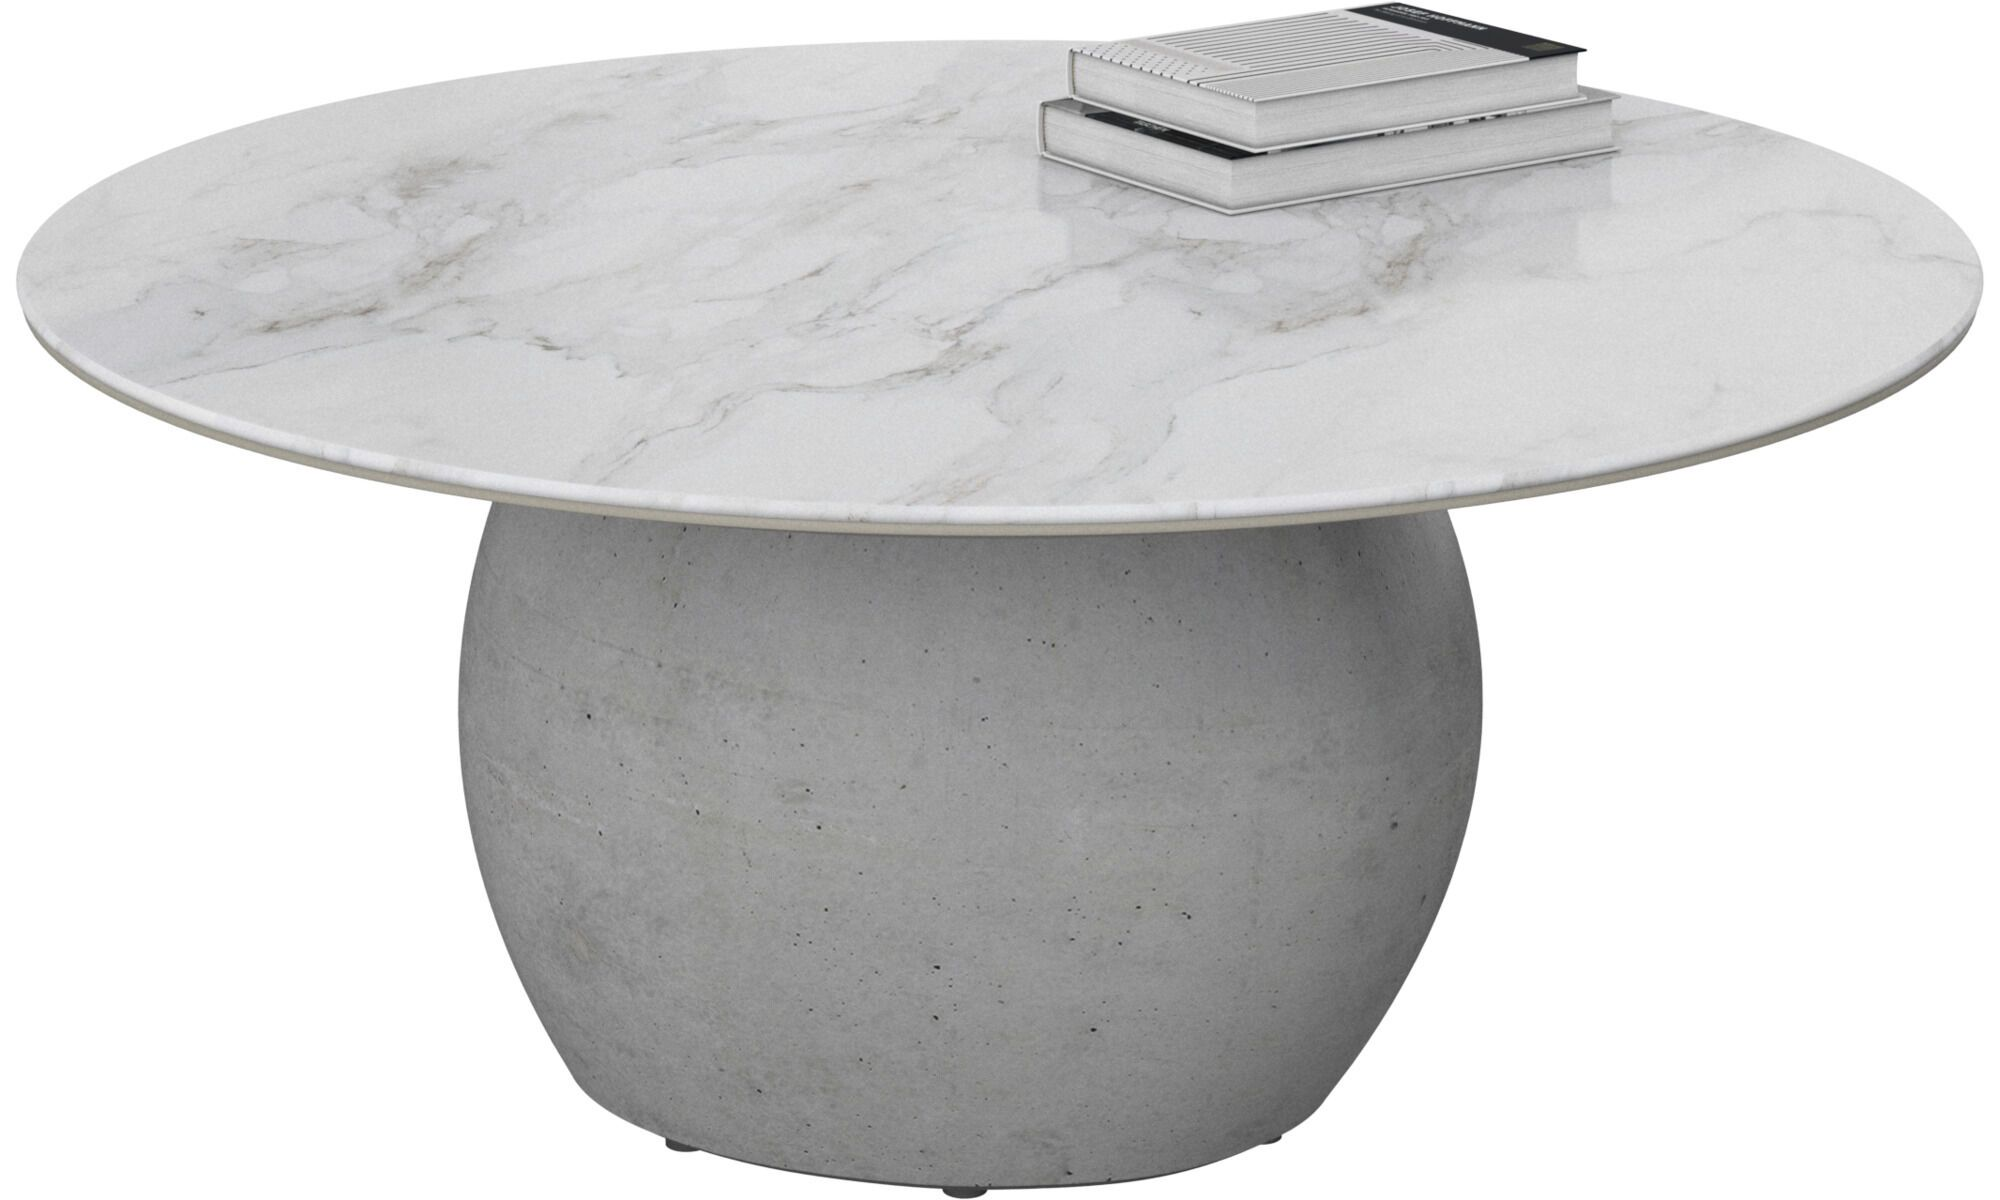 Coffee Tables Bilbao Coffee Table Round White Ceramic White Round Coffee Table Side Table Design Side Table [ 1200 x 2000 Pixel ]